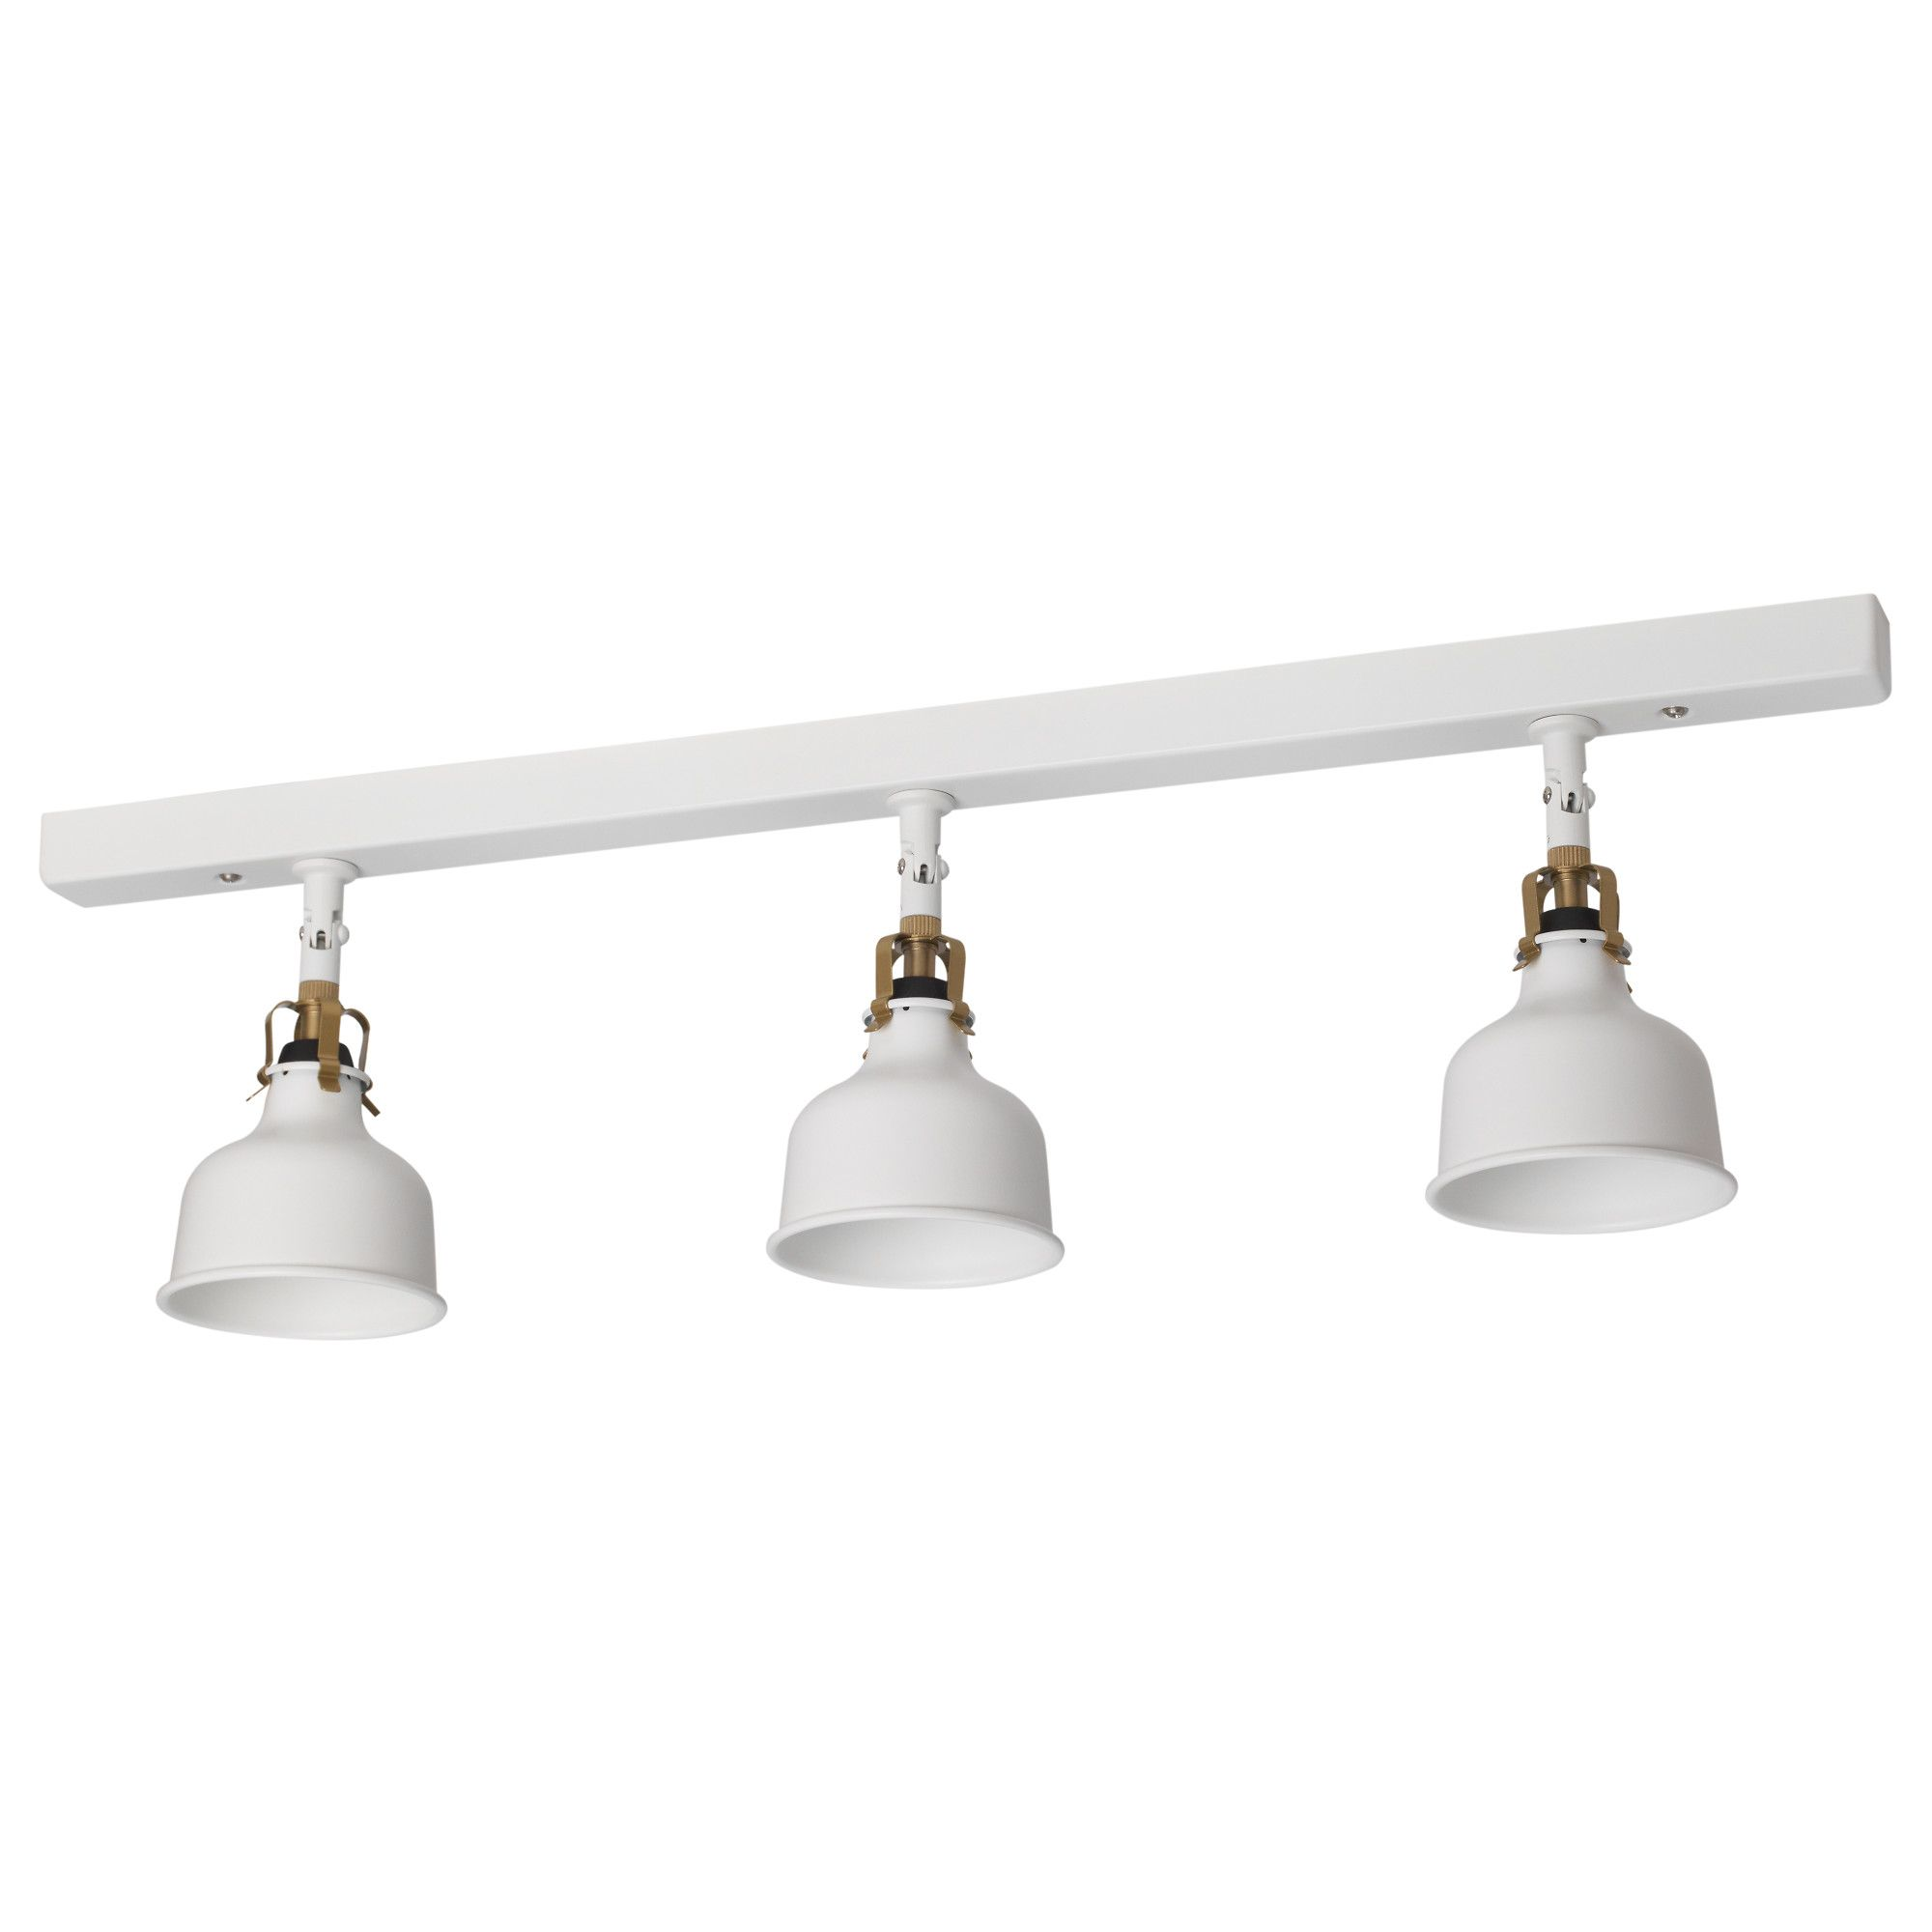 RANARP Ceiling track, 3-spots Off-white | Brew | Pinterest ...